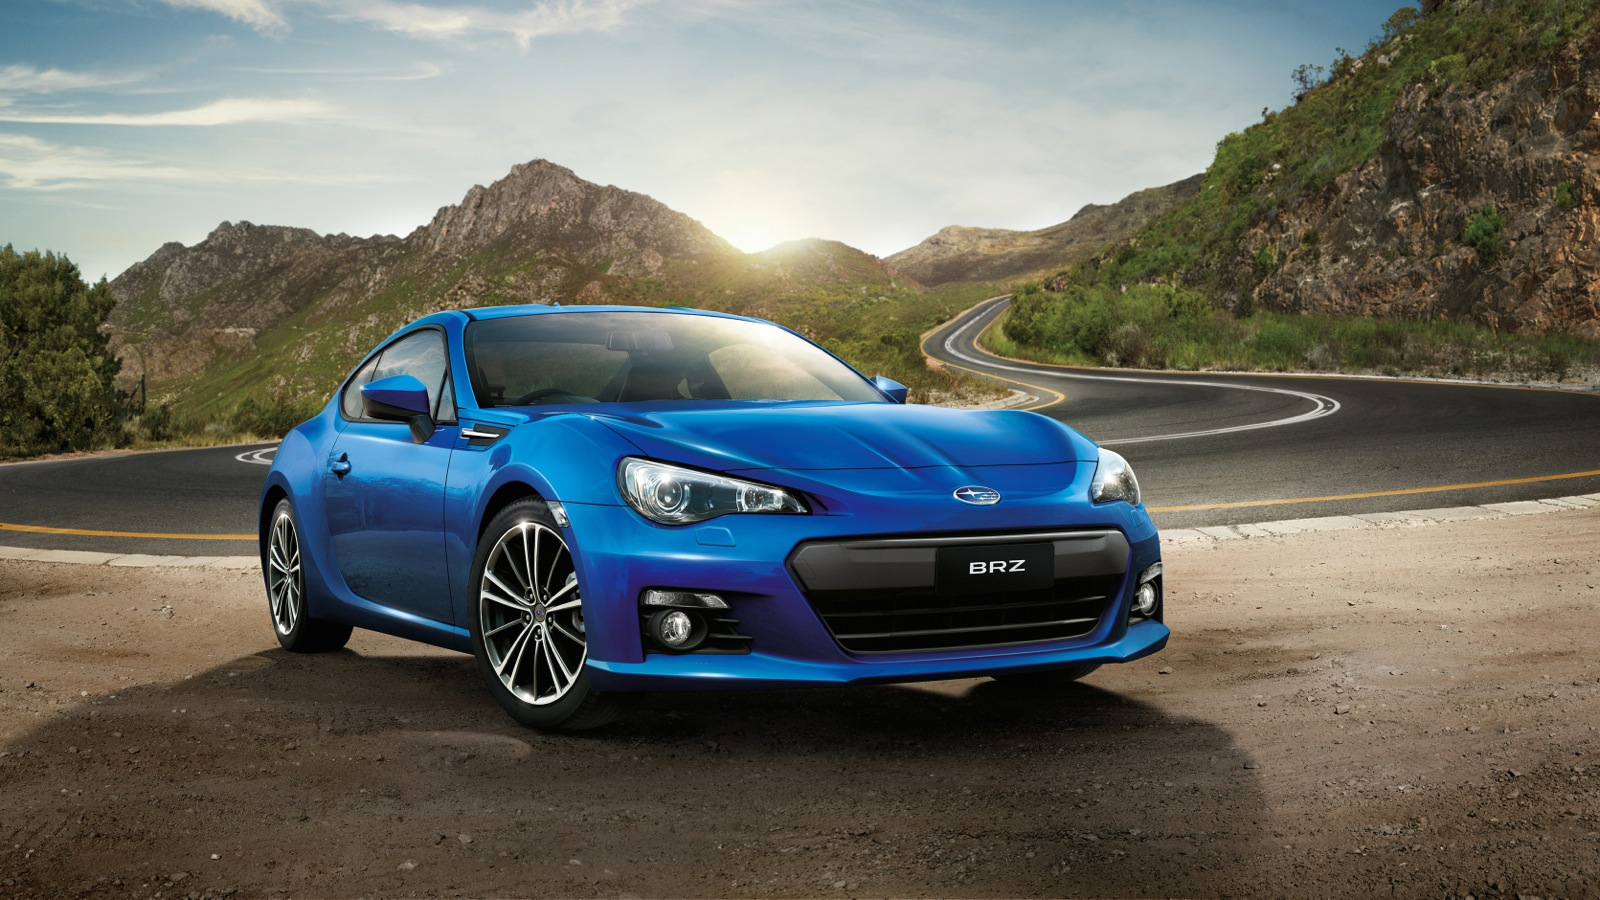 2015 Subaru BRZ: Suspension tweaks, styling changes for Toyota 86 ...